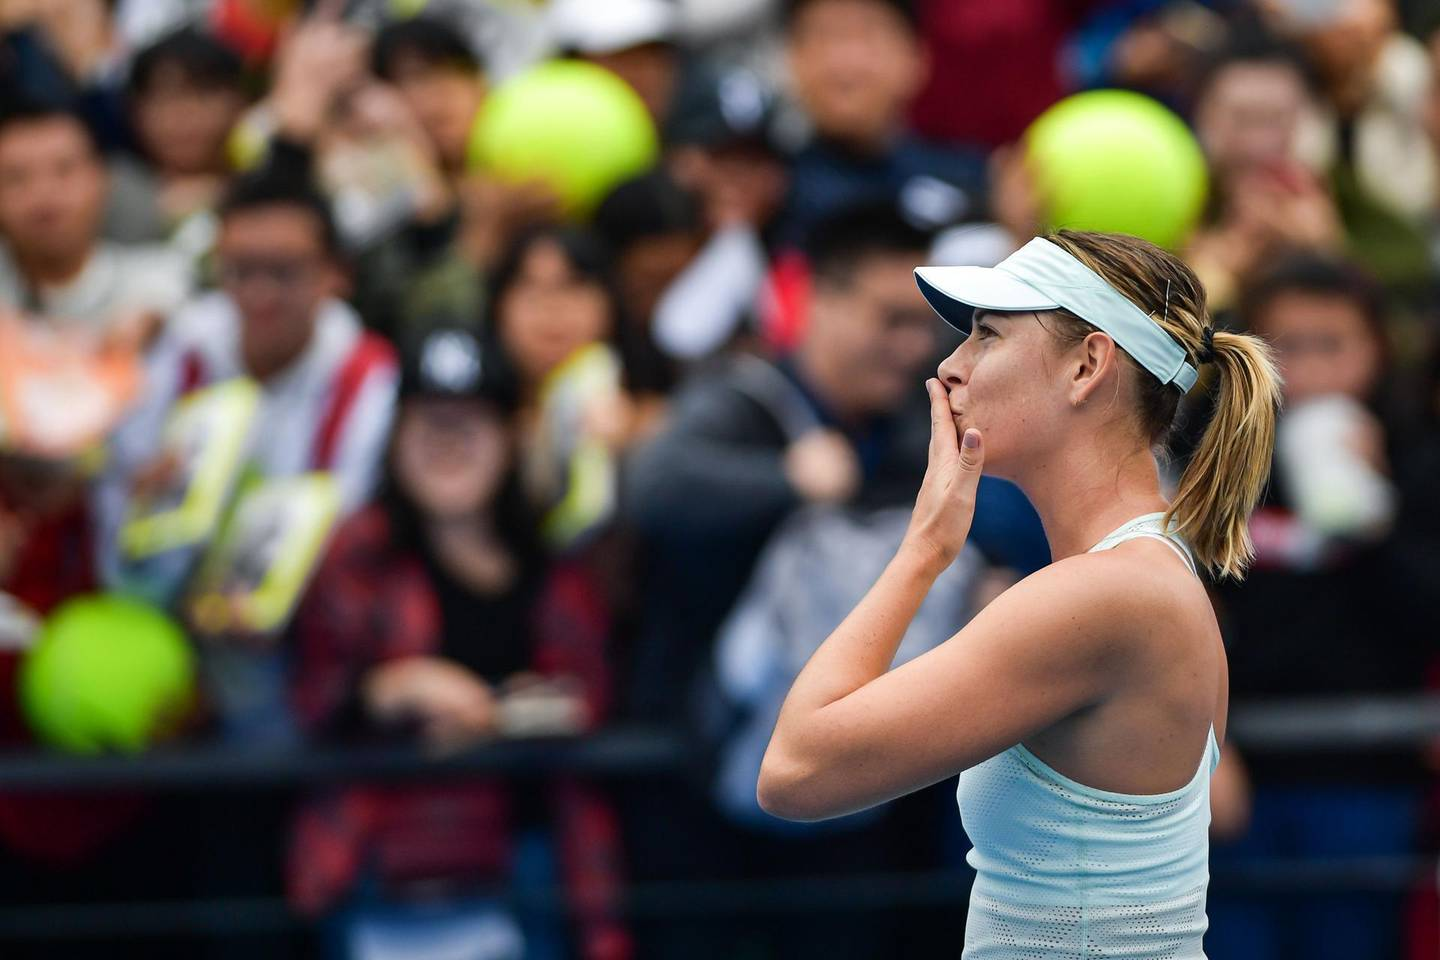 Maria Sharapova of Russia blows a kiss to the crowd after her victory over Mihaela Buzarnescu of Romania in the first round of the Shenzhen Open tennis tournament in Shenzhen, in China's southern Guangdong province on January 1, 2018. / AFP PHOTO / - / China OUT